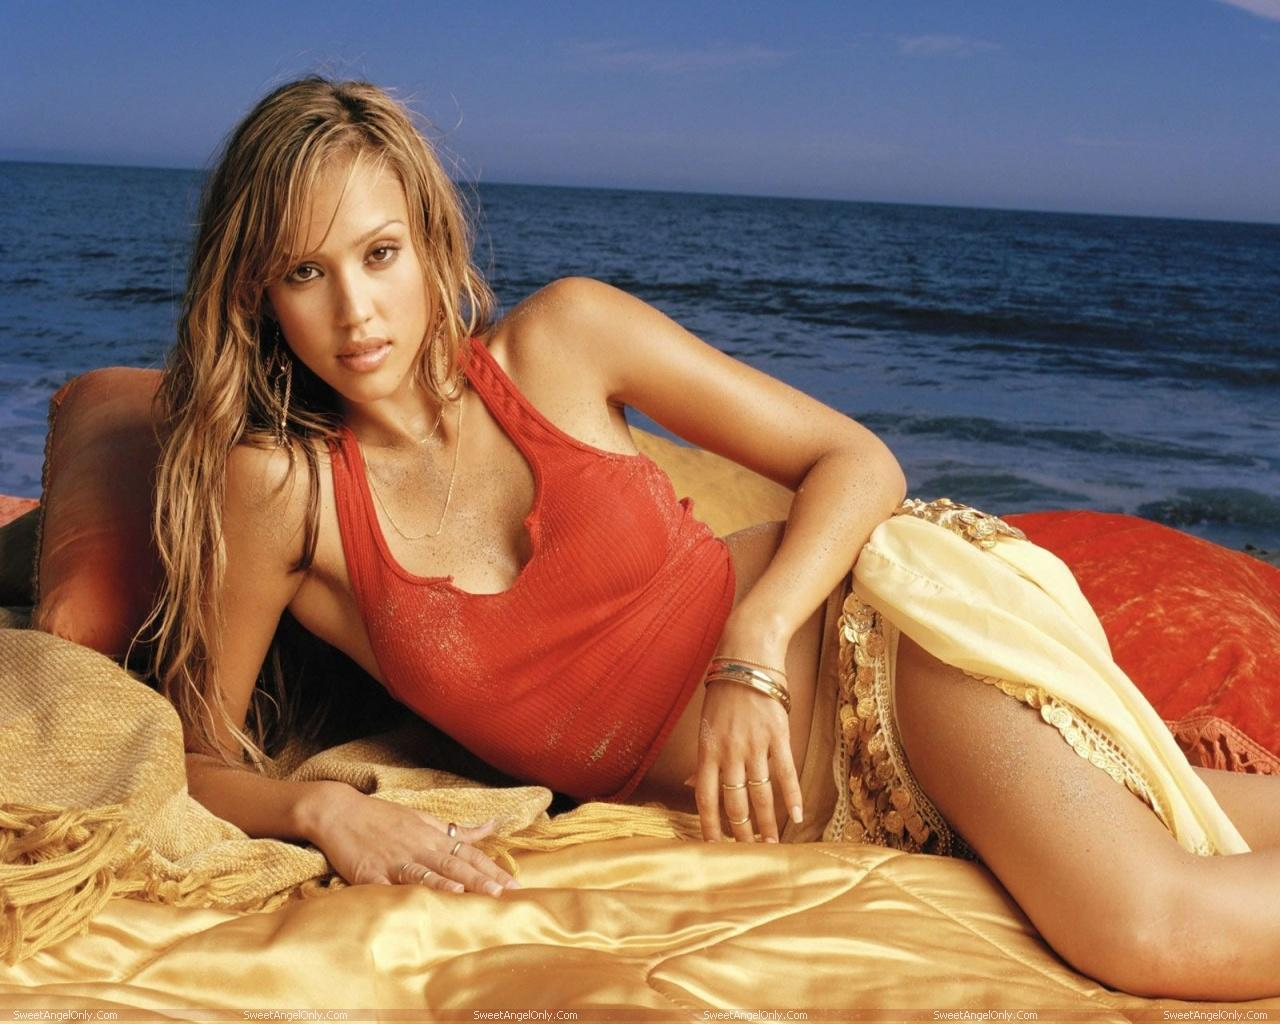 http://1.bp.blogspot.com/-B97l1tPvnRU/TW5abuWCfsI/AAAAAAAAE8g/5ZrHna9hx28/s1600/celebrity_jessica_alba_hot_photo_shoot_in_bikini_sweetangelonly_40.jpg